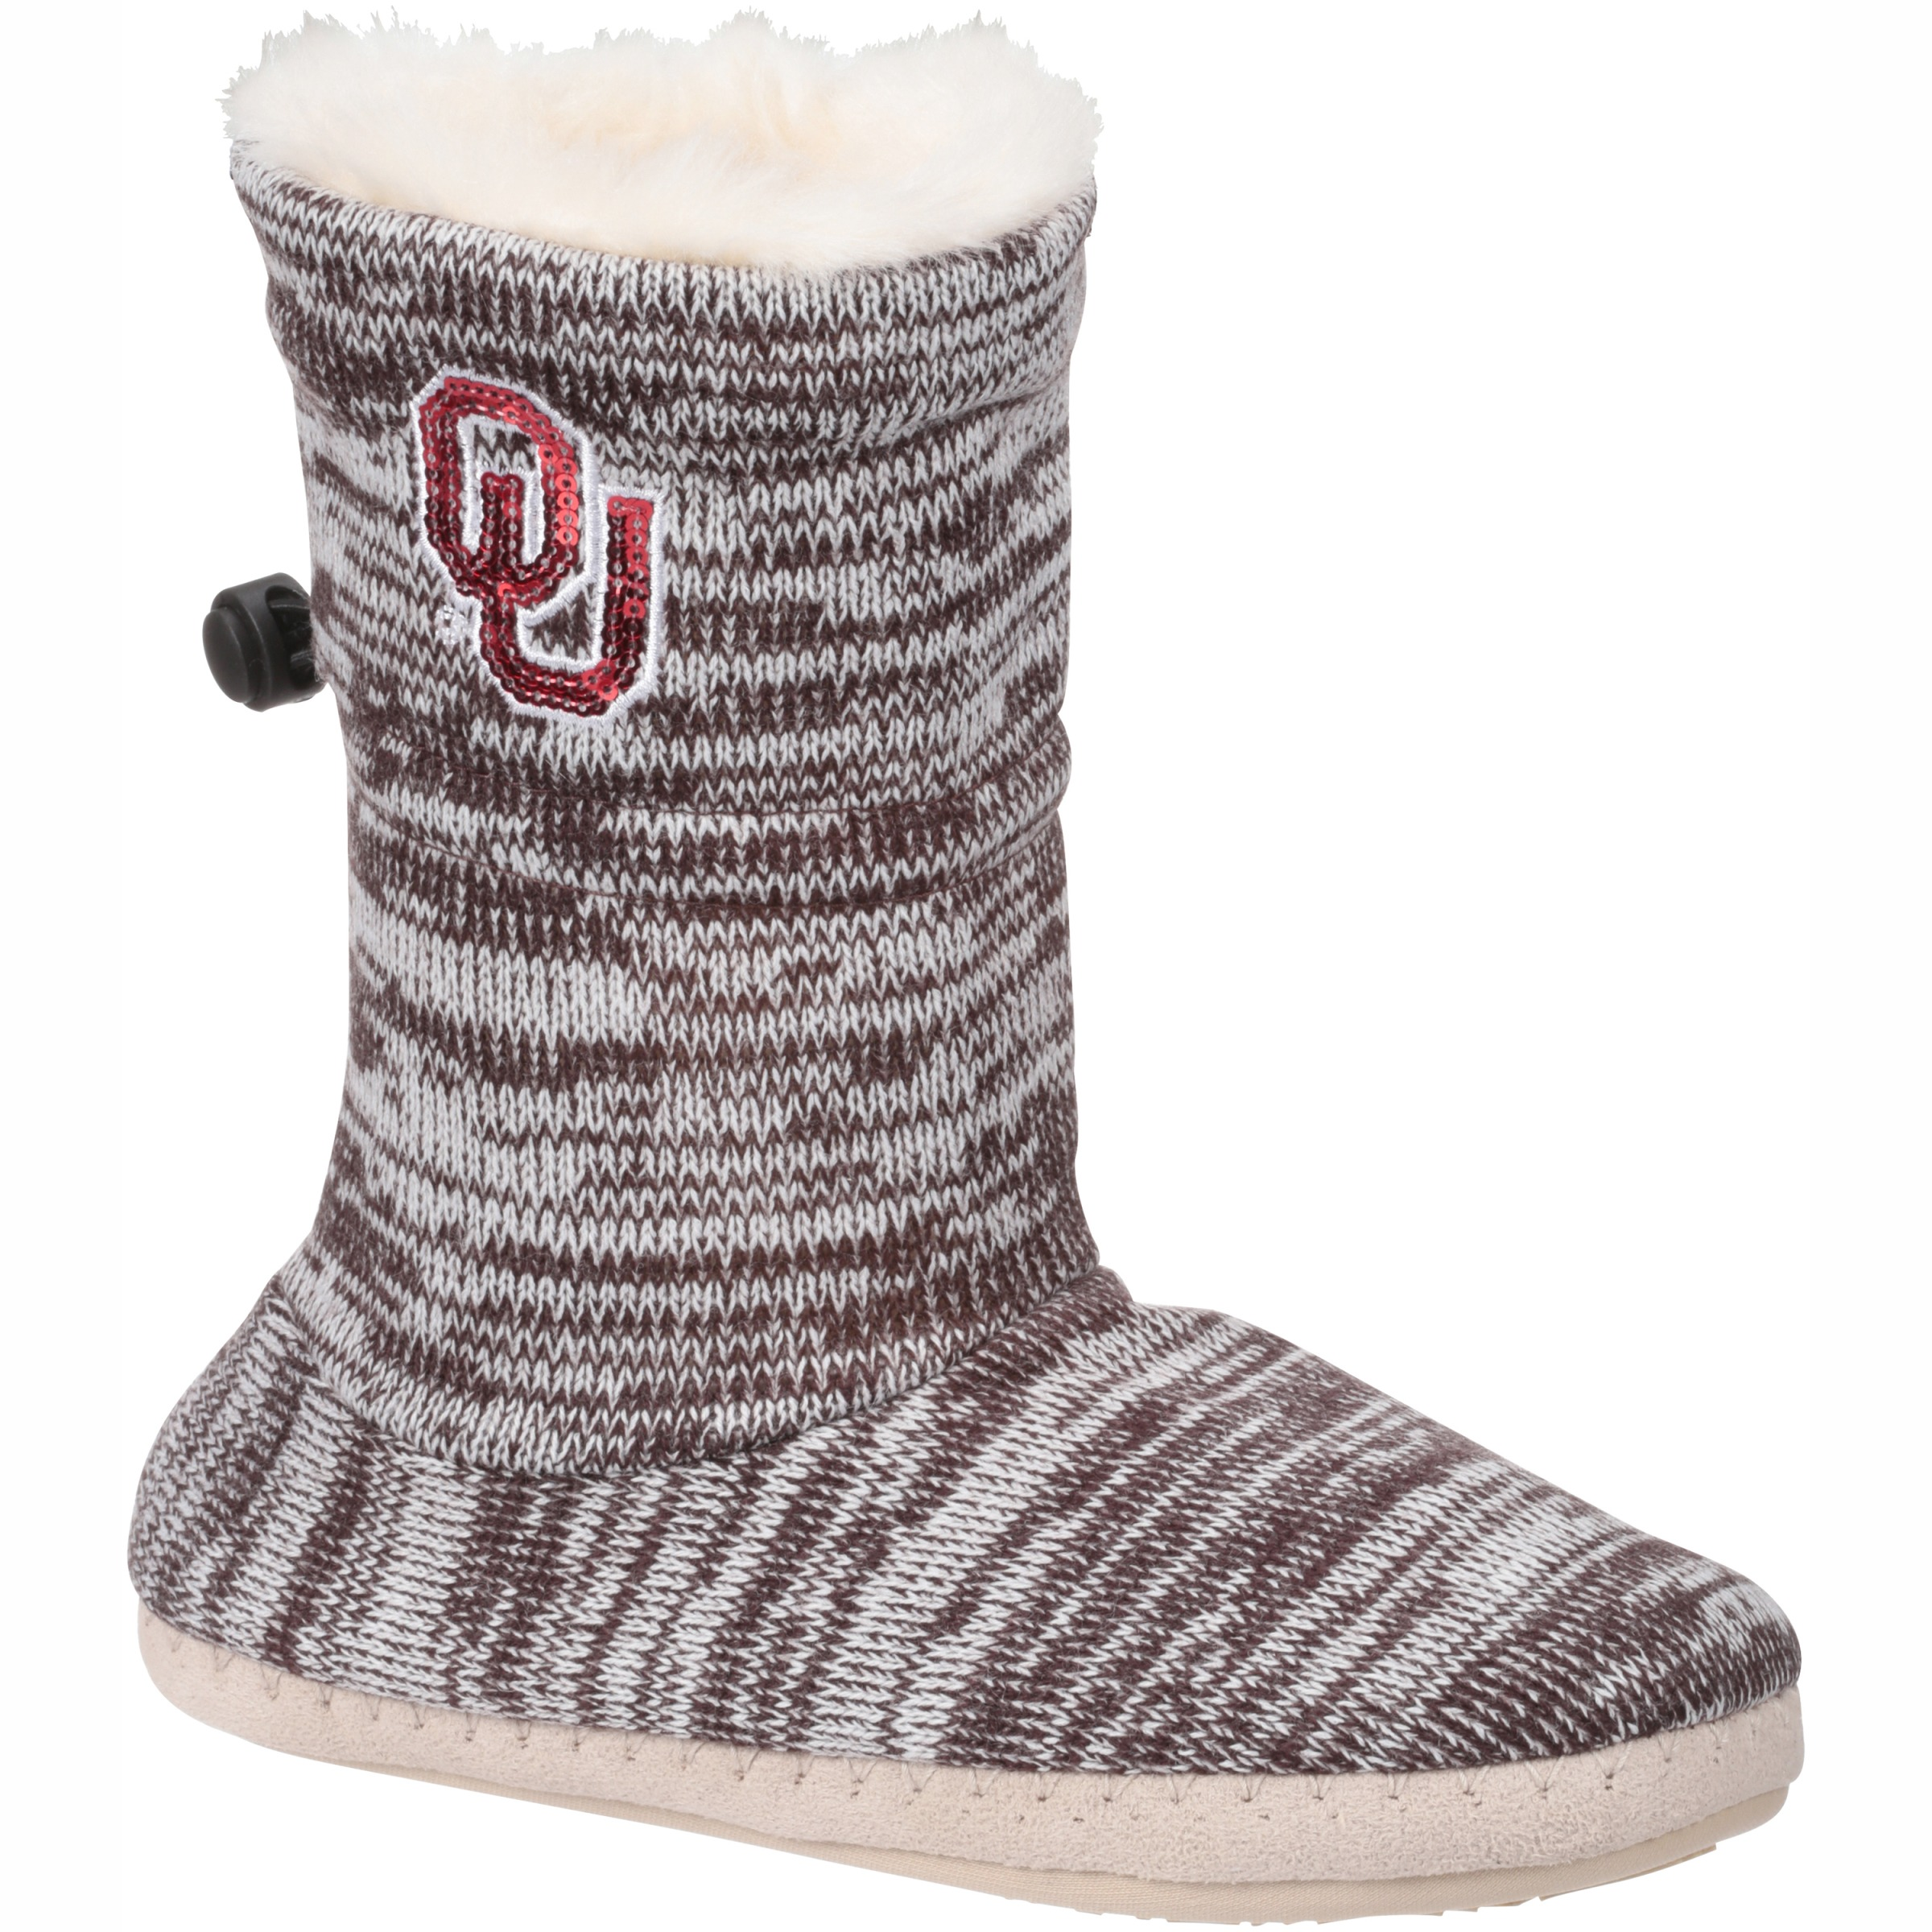 Collegiate Footwear NCAA Oklahoma Women's Boots by Renaissance Imports, Inc.